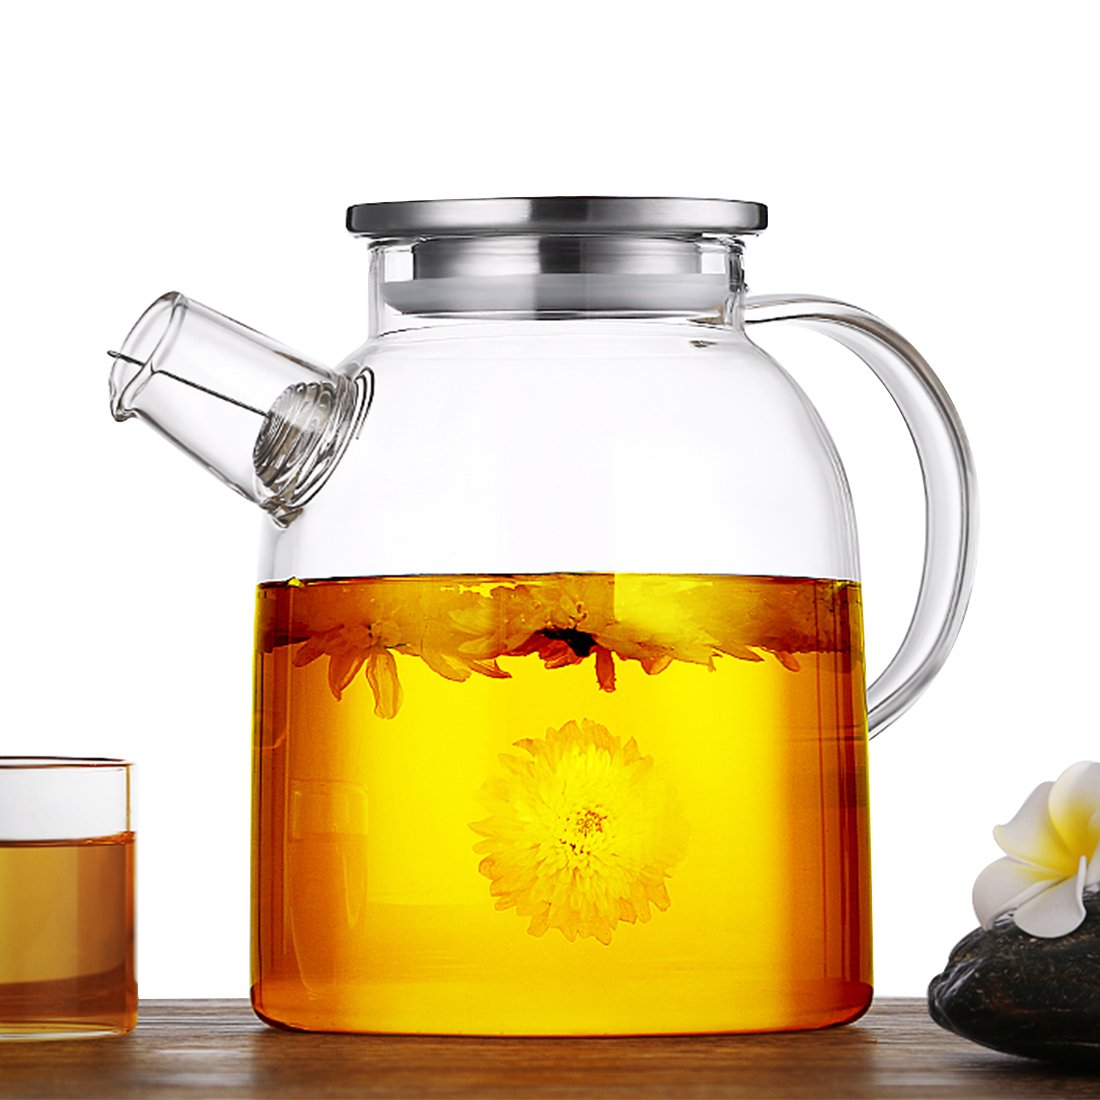 JIAQI 54 Oz Glass Water Pitcher with Stainless Steel Lid - Large Capacity Water Tea Pot with Safe Filter Iced Tea Pitcher